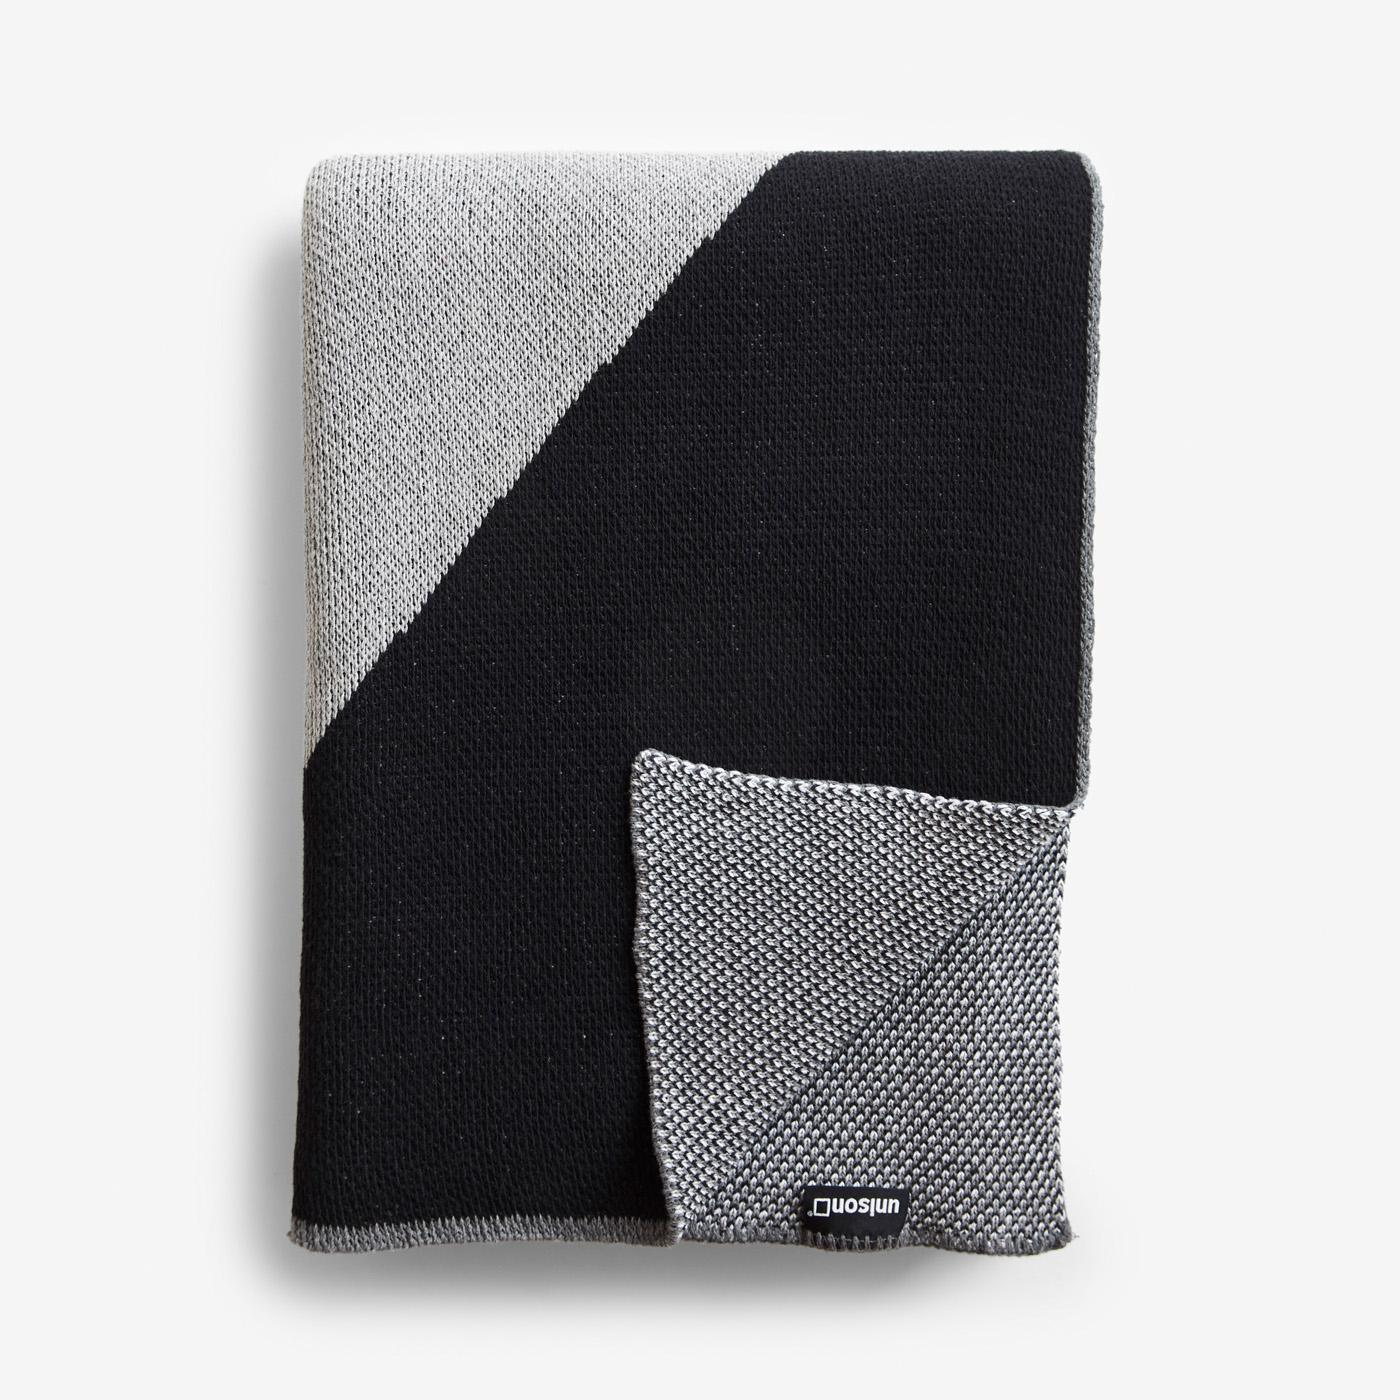 Turin Black Knit Throw Blanket